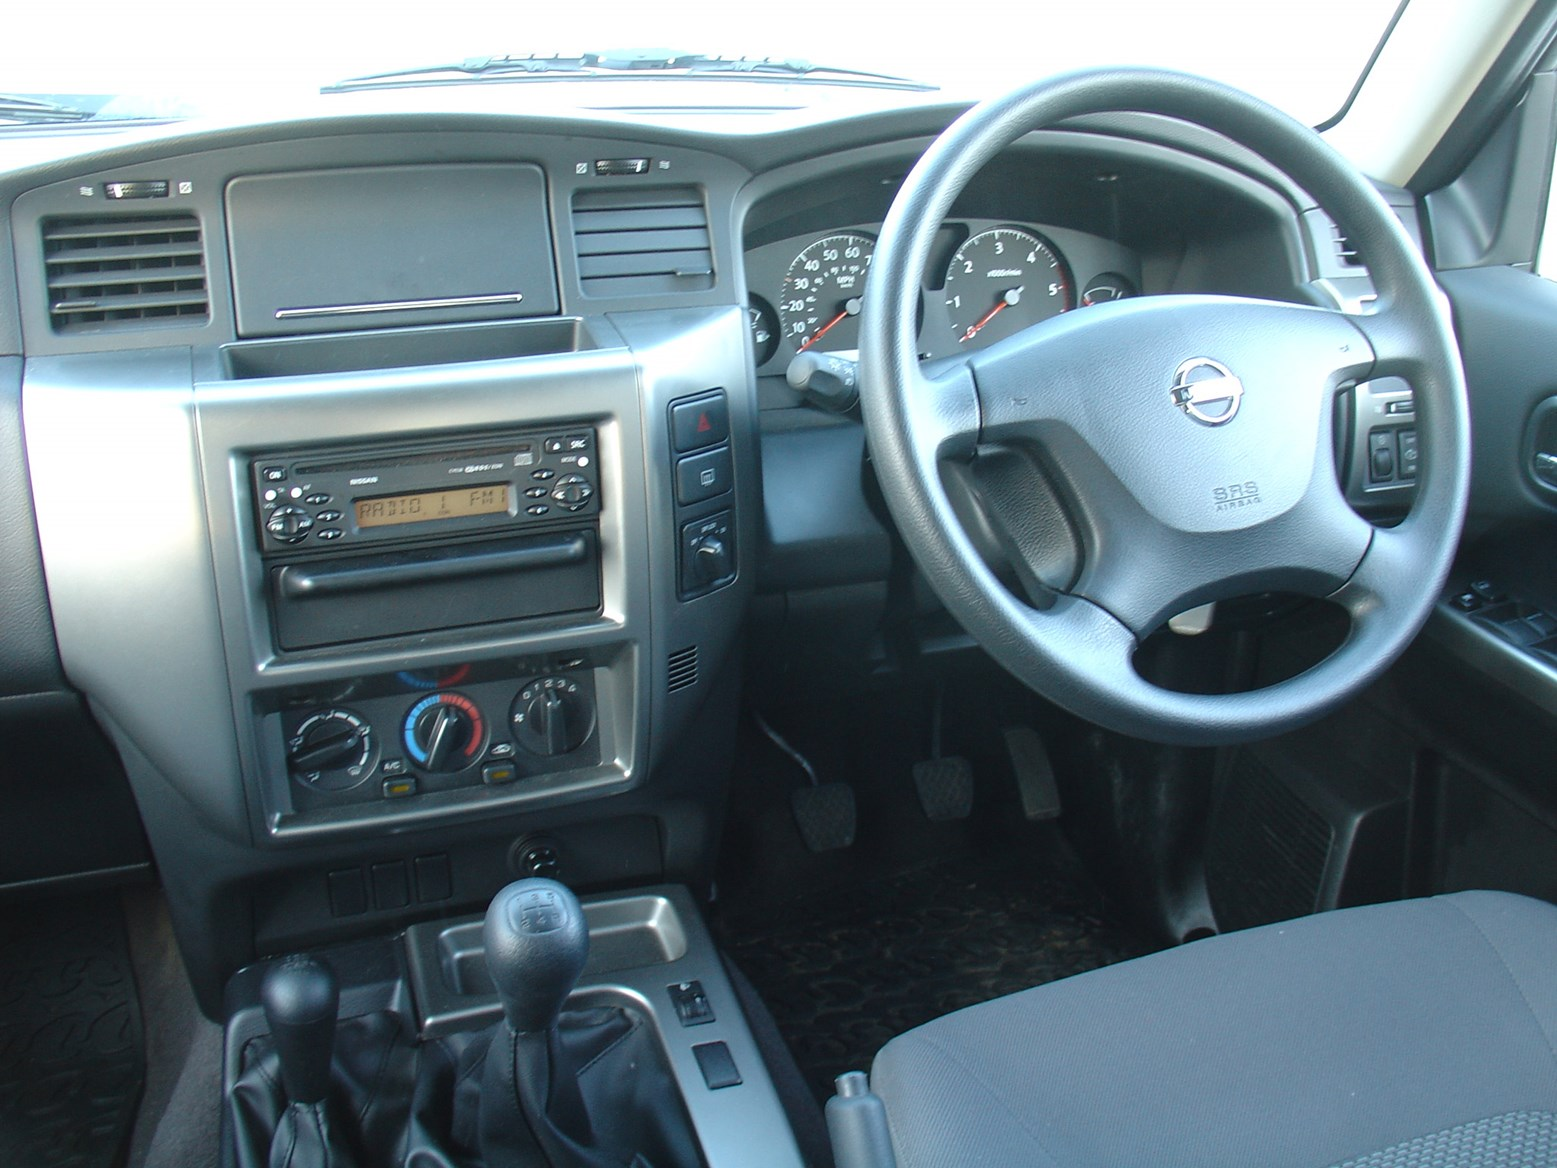 Used Nissan Patrol Station Wagon (1998 - 2009) MPG | Parkers